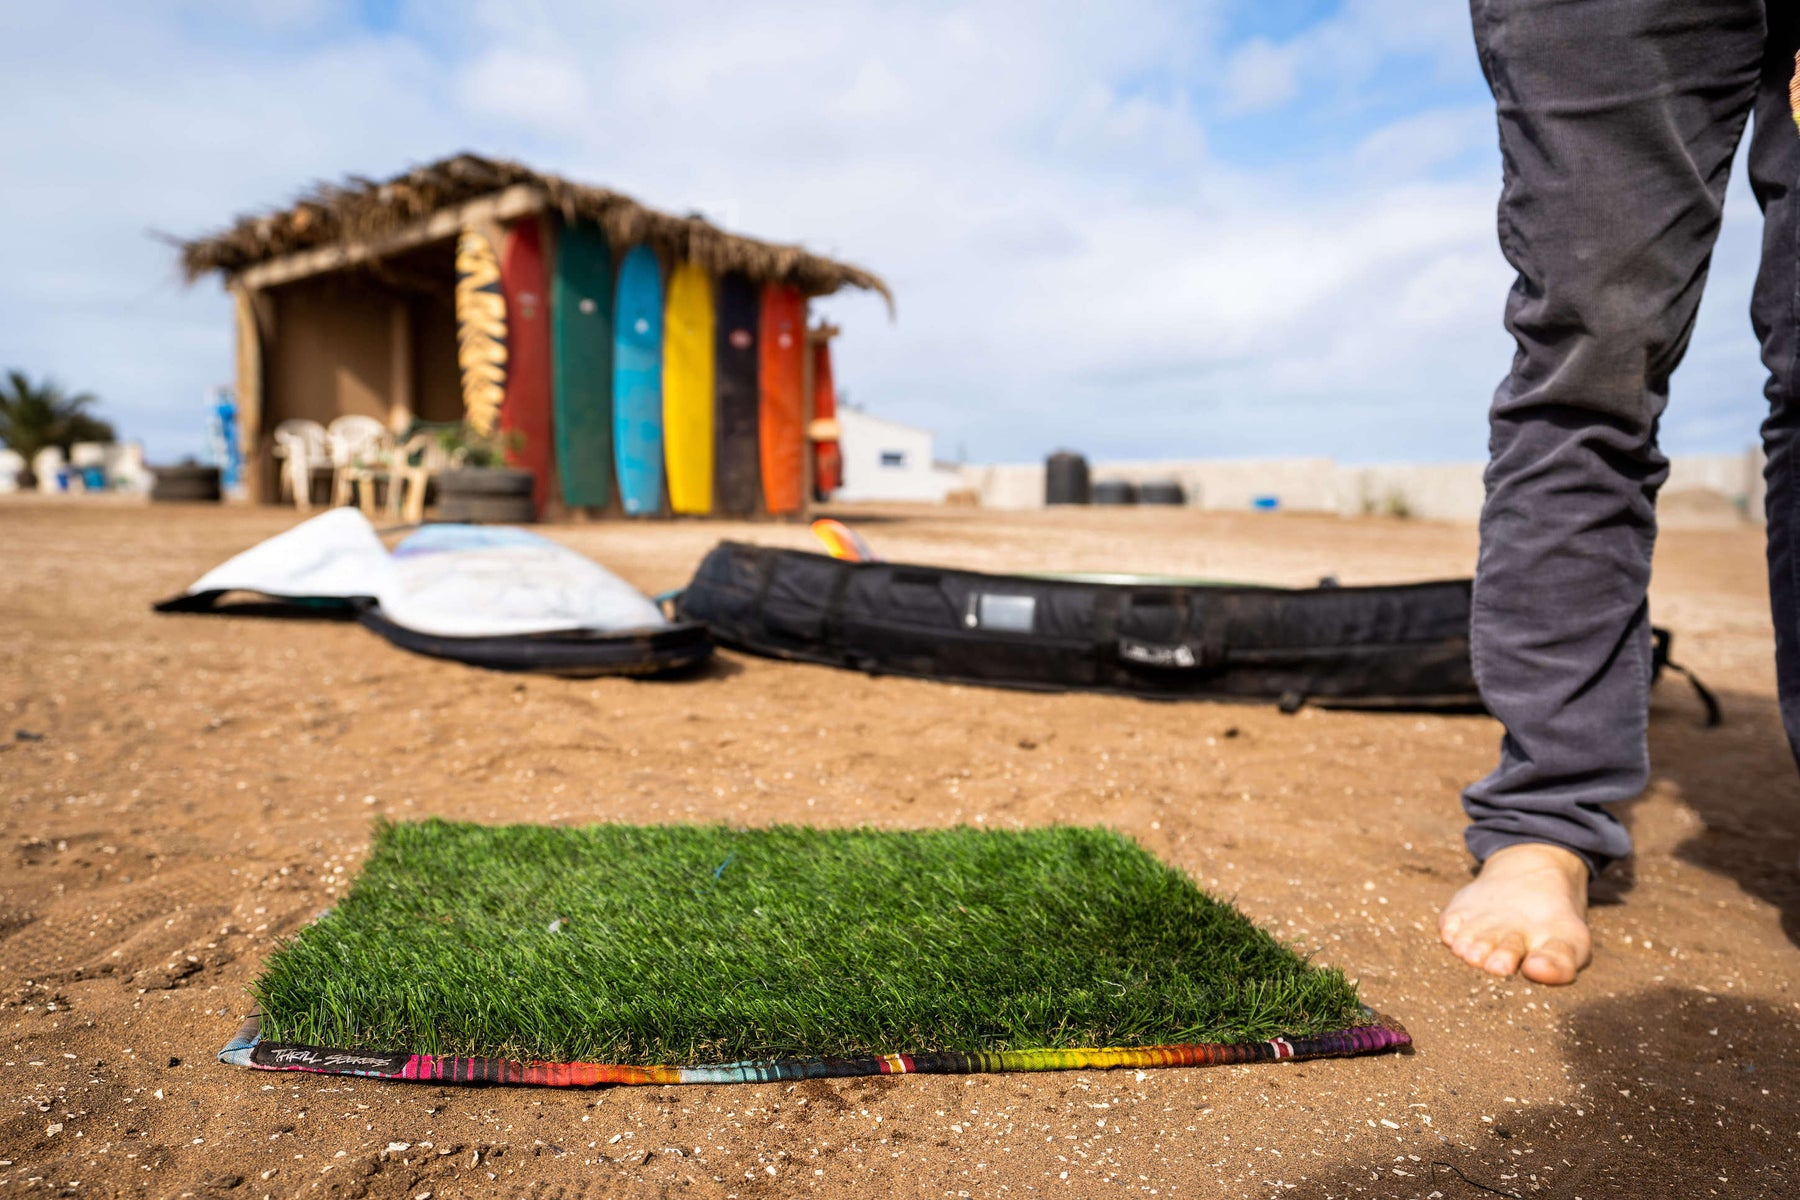 Thrill Seekers Good Time Grass. The coolest changing mats! Surf, Moto, anything changing mats. Turf and serape. Built for Fun